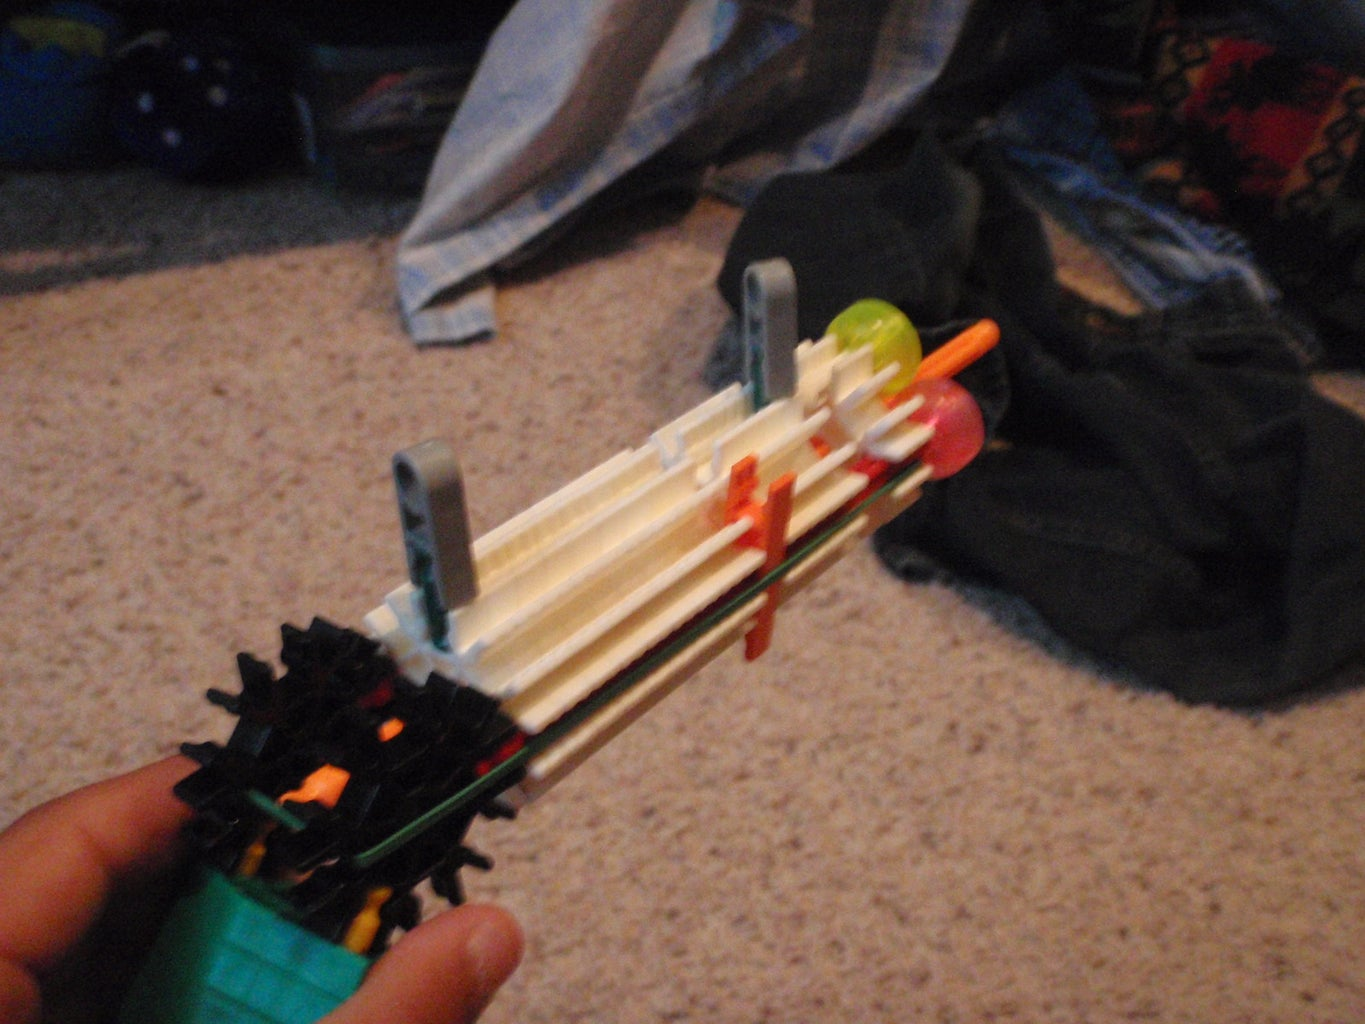 Rubber Band, Decorations, and Firing